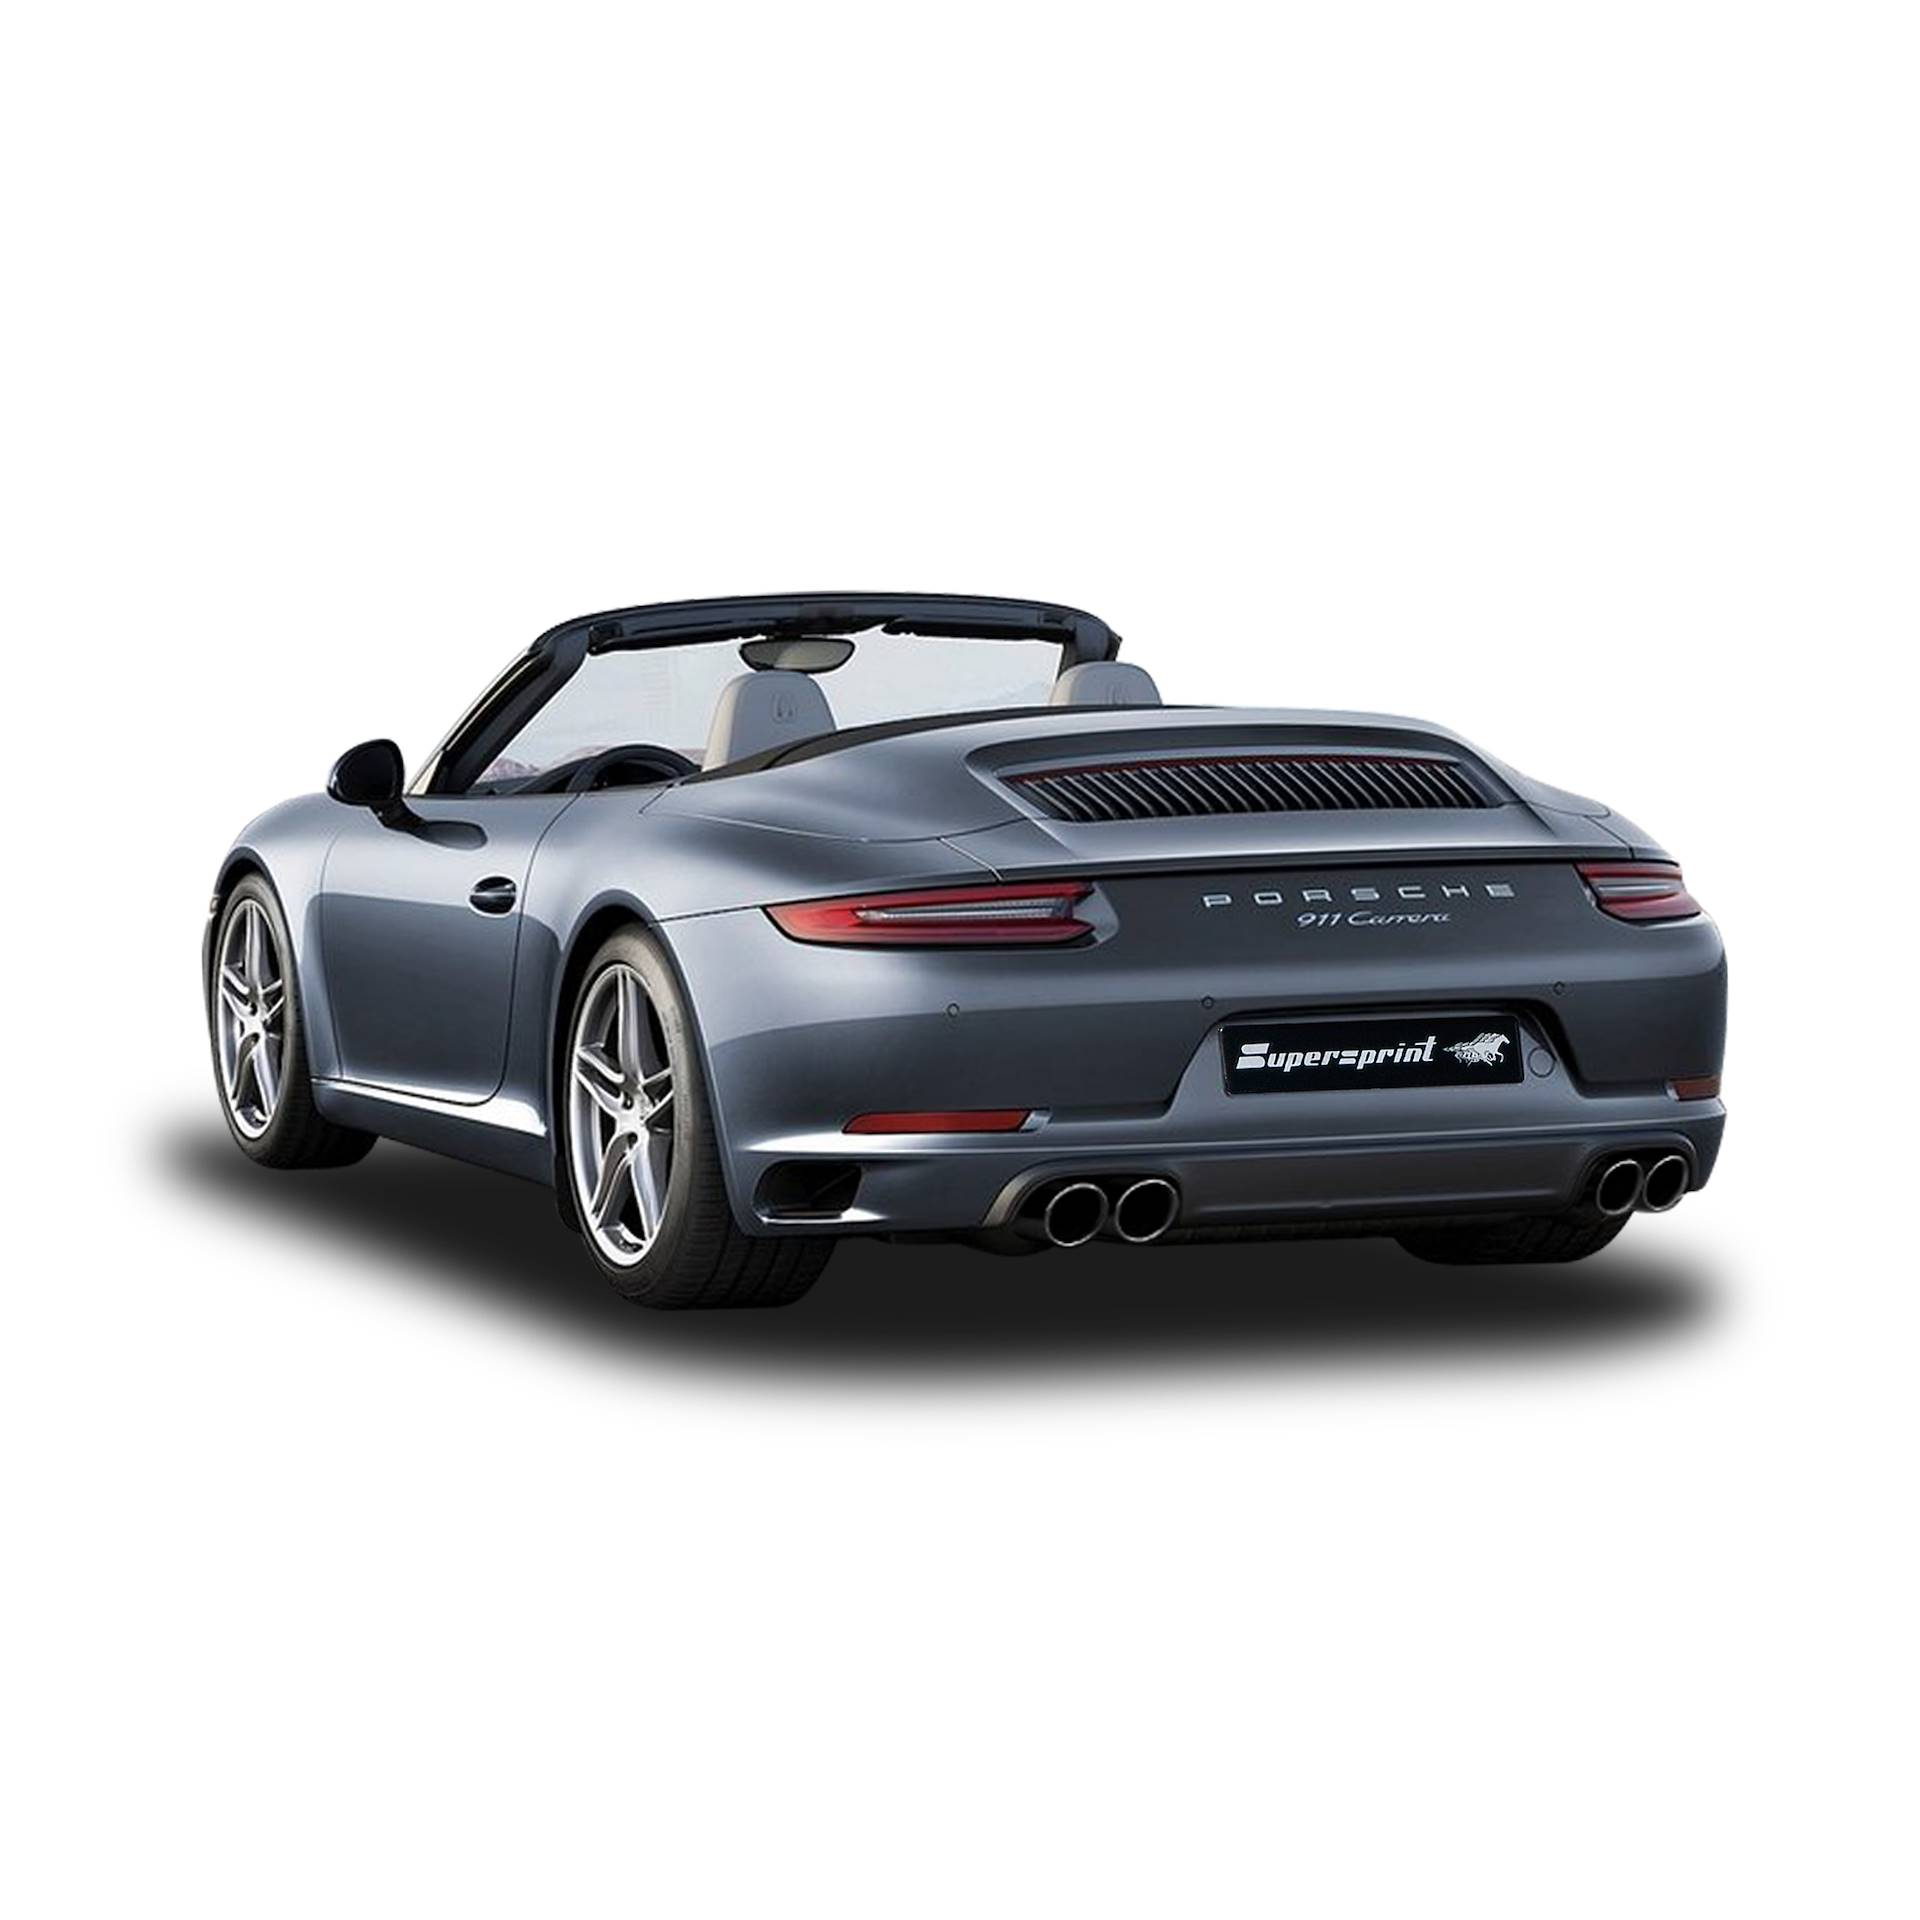 Supersprint Udstødning Porsche 991 Cabrio 3.0 Turbo